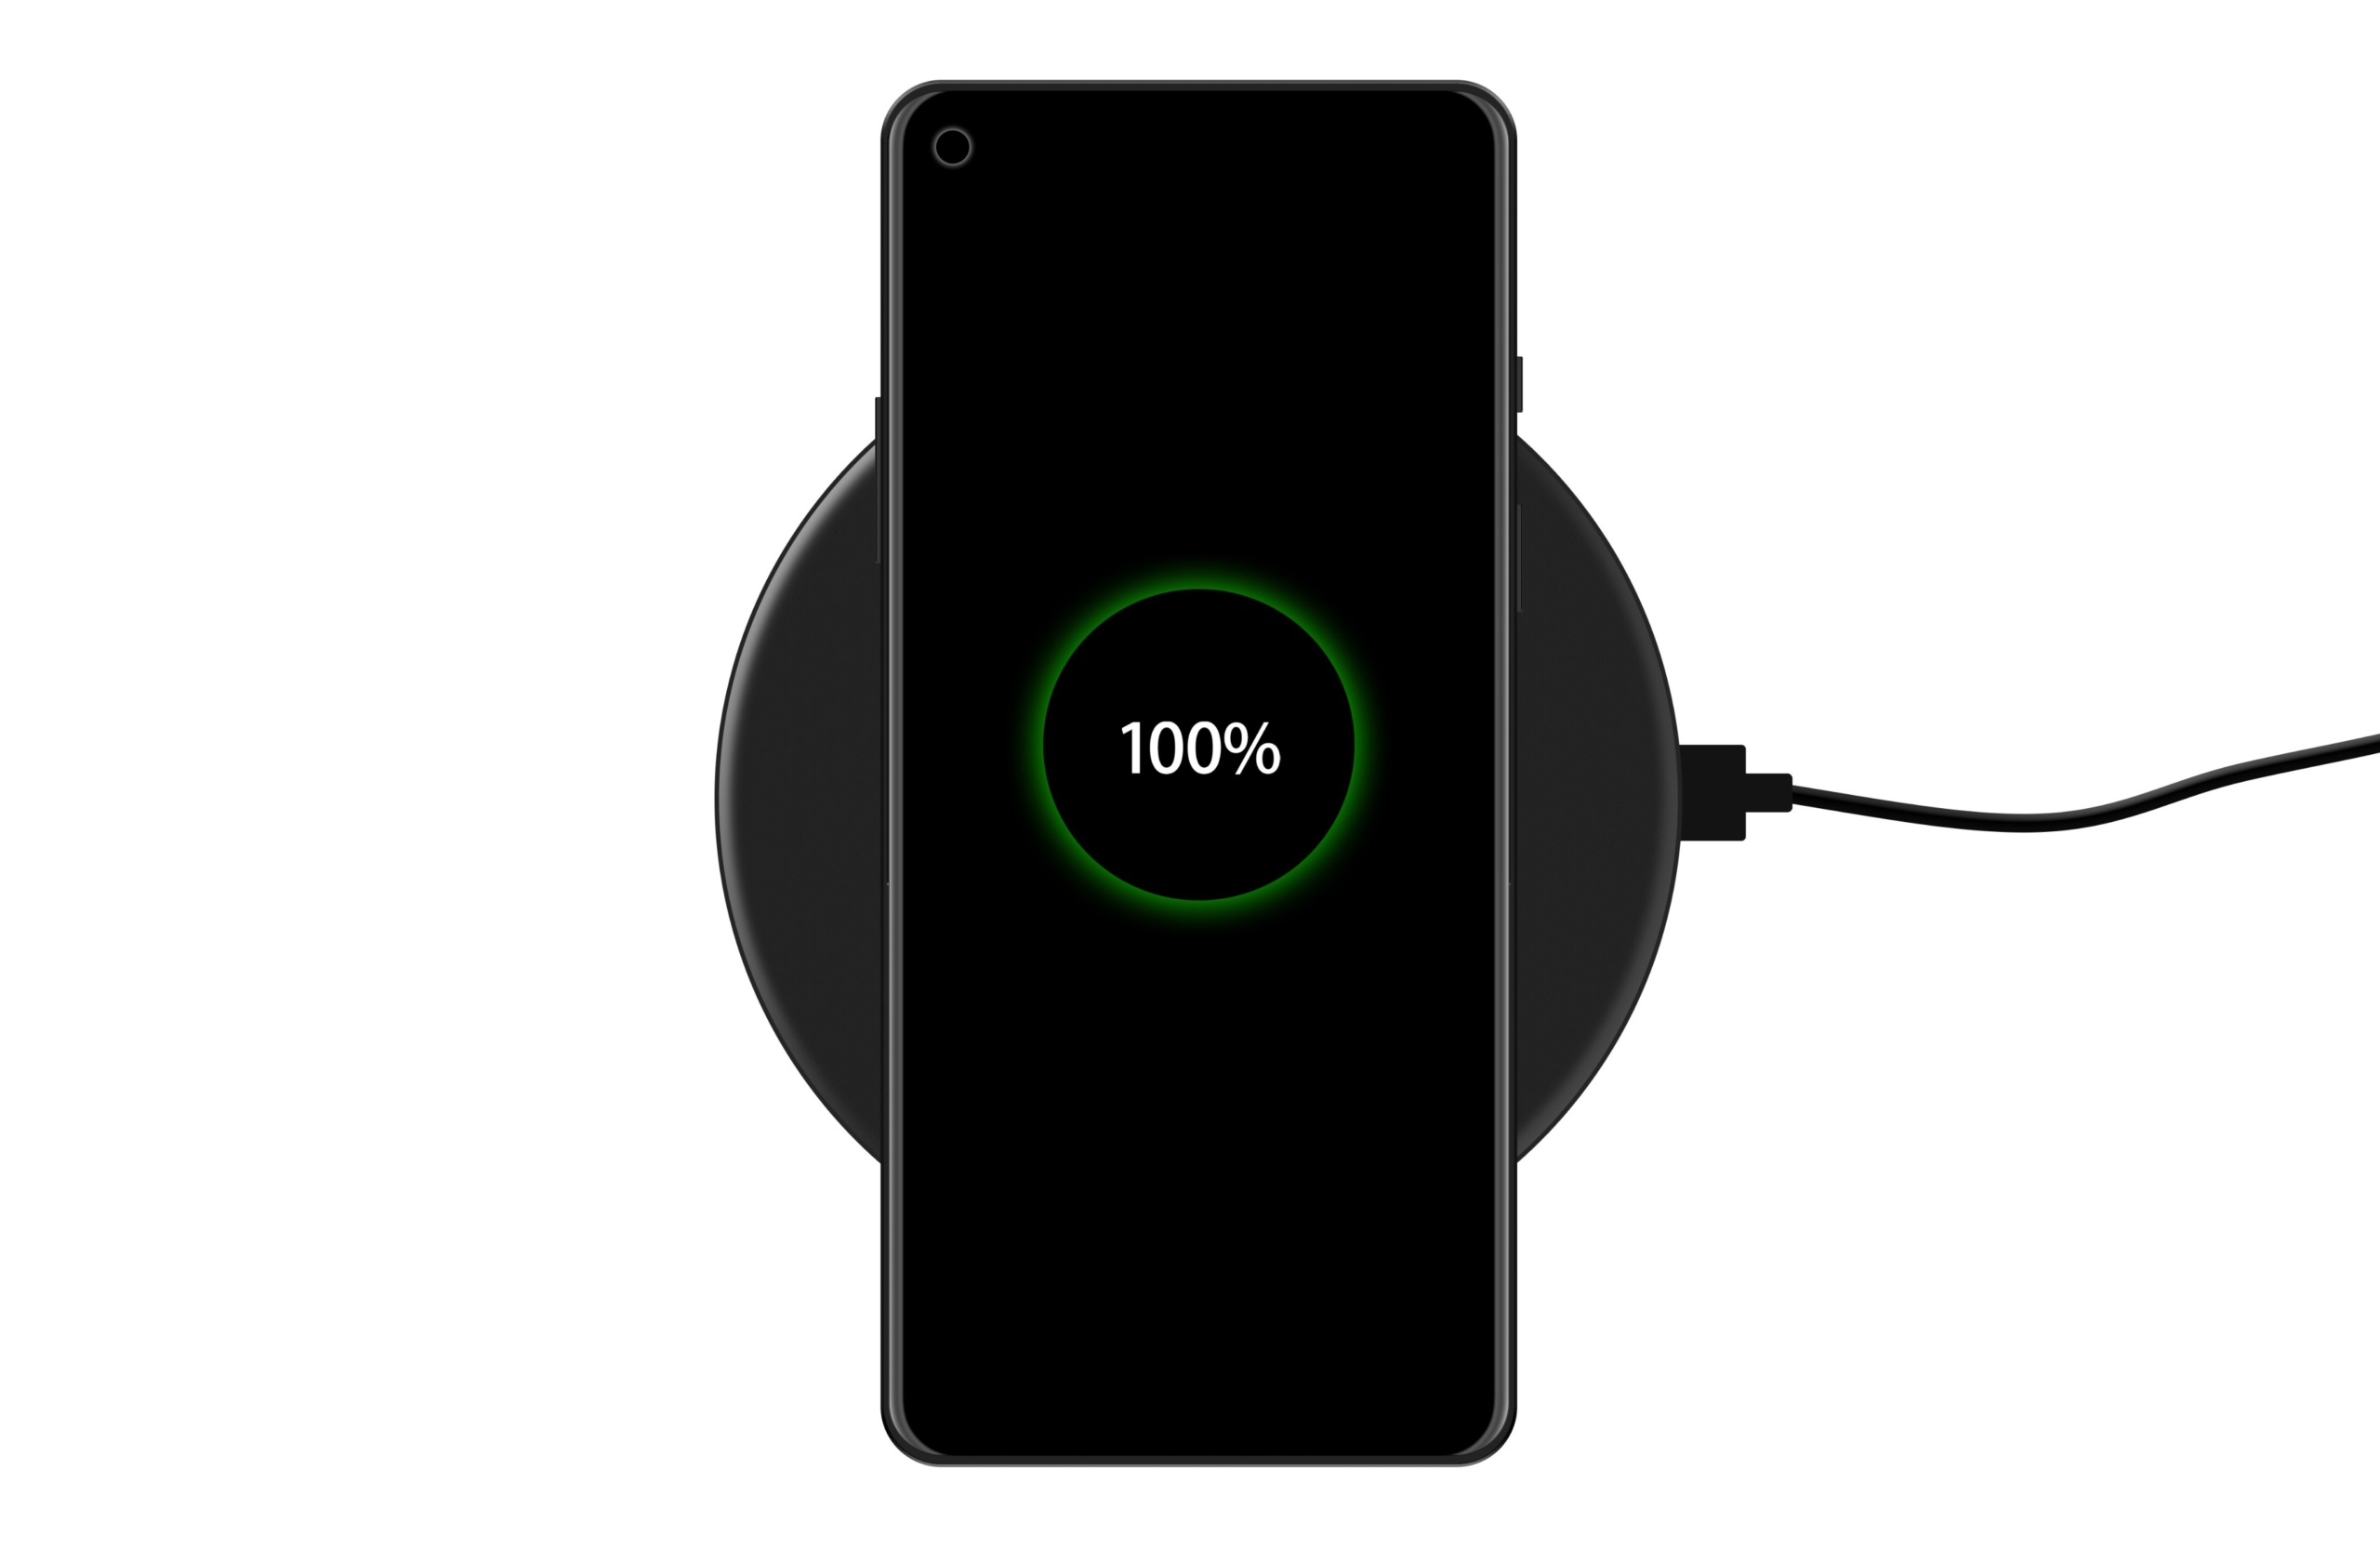 OnePlus 8 Pro might get wireless charging support